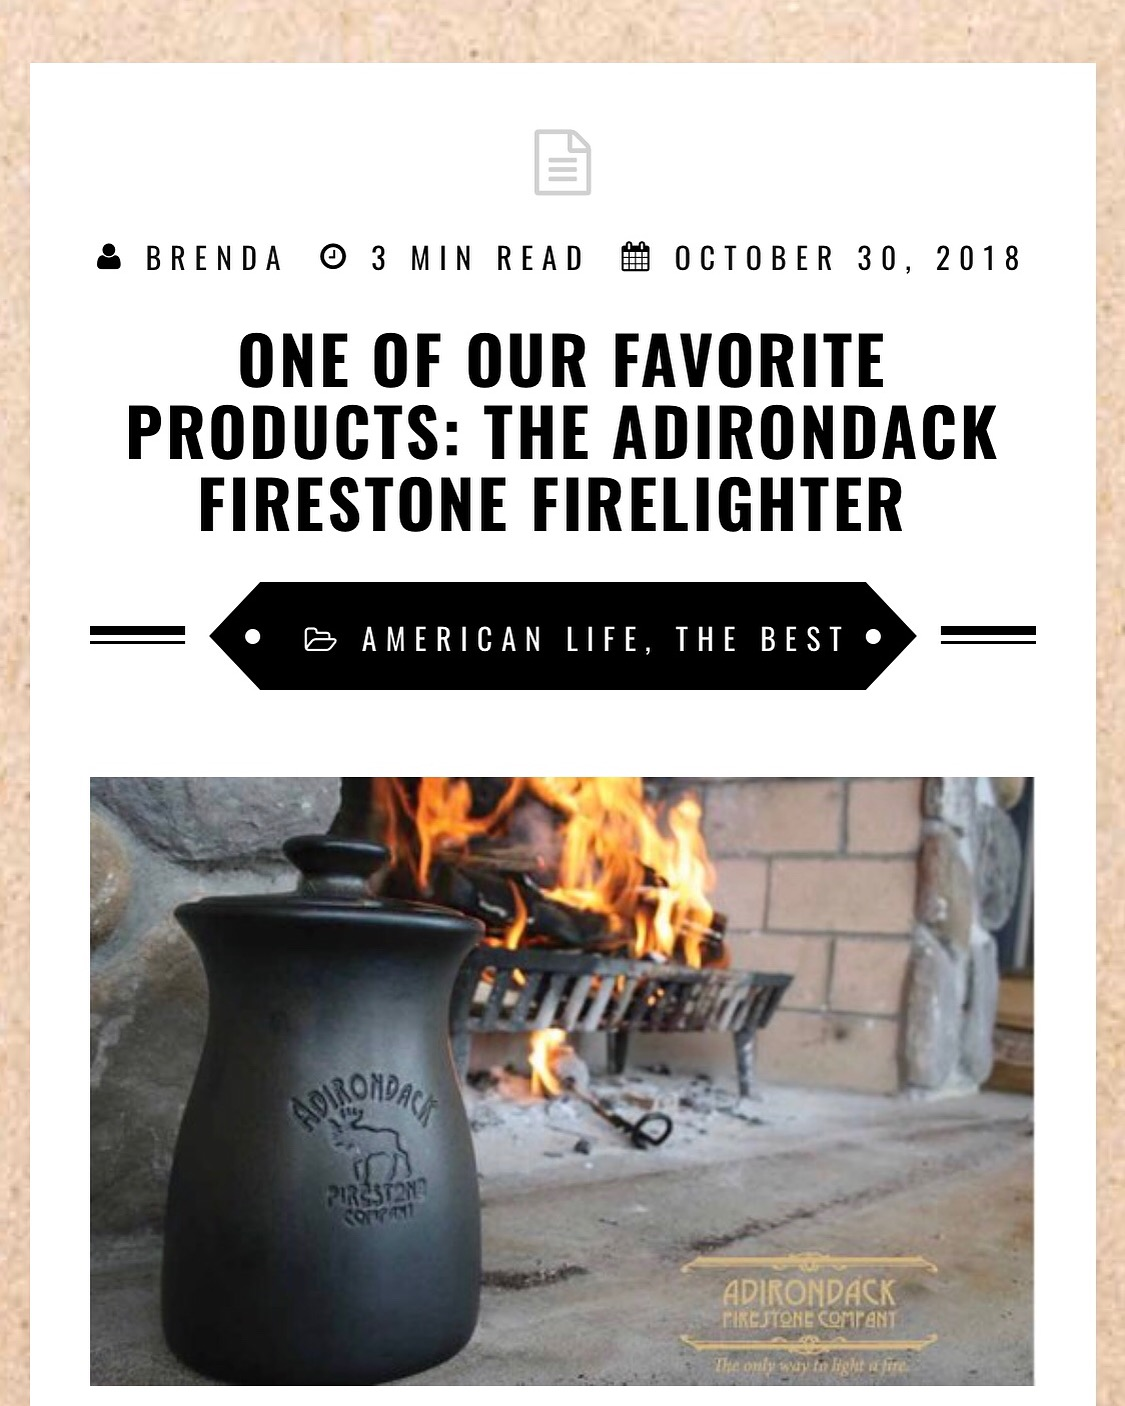 Bed and Breakfast establishments love using their Adirondack Firestone Firelighters!